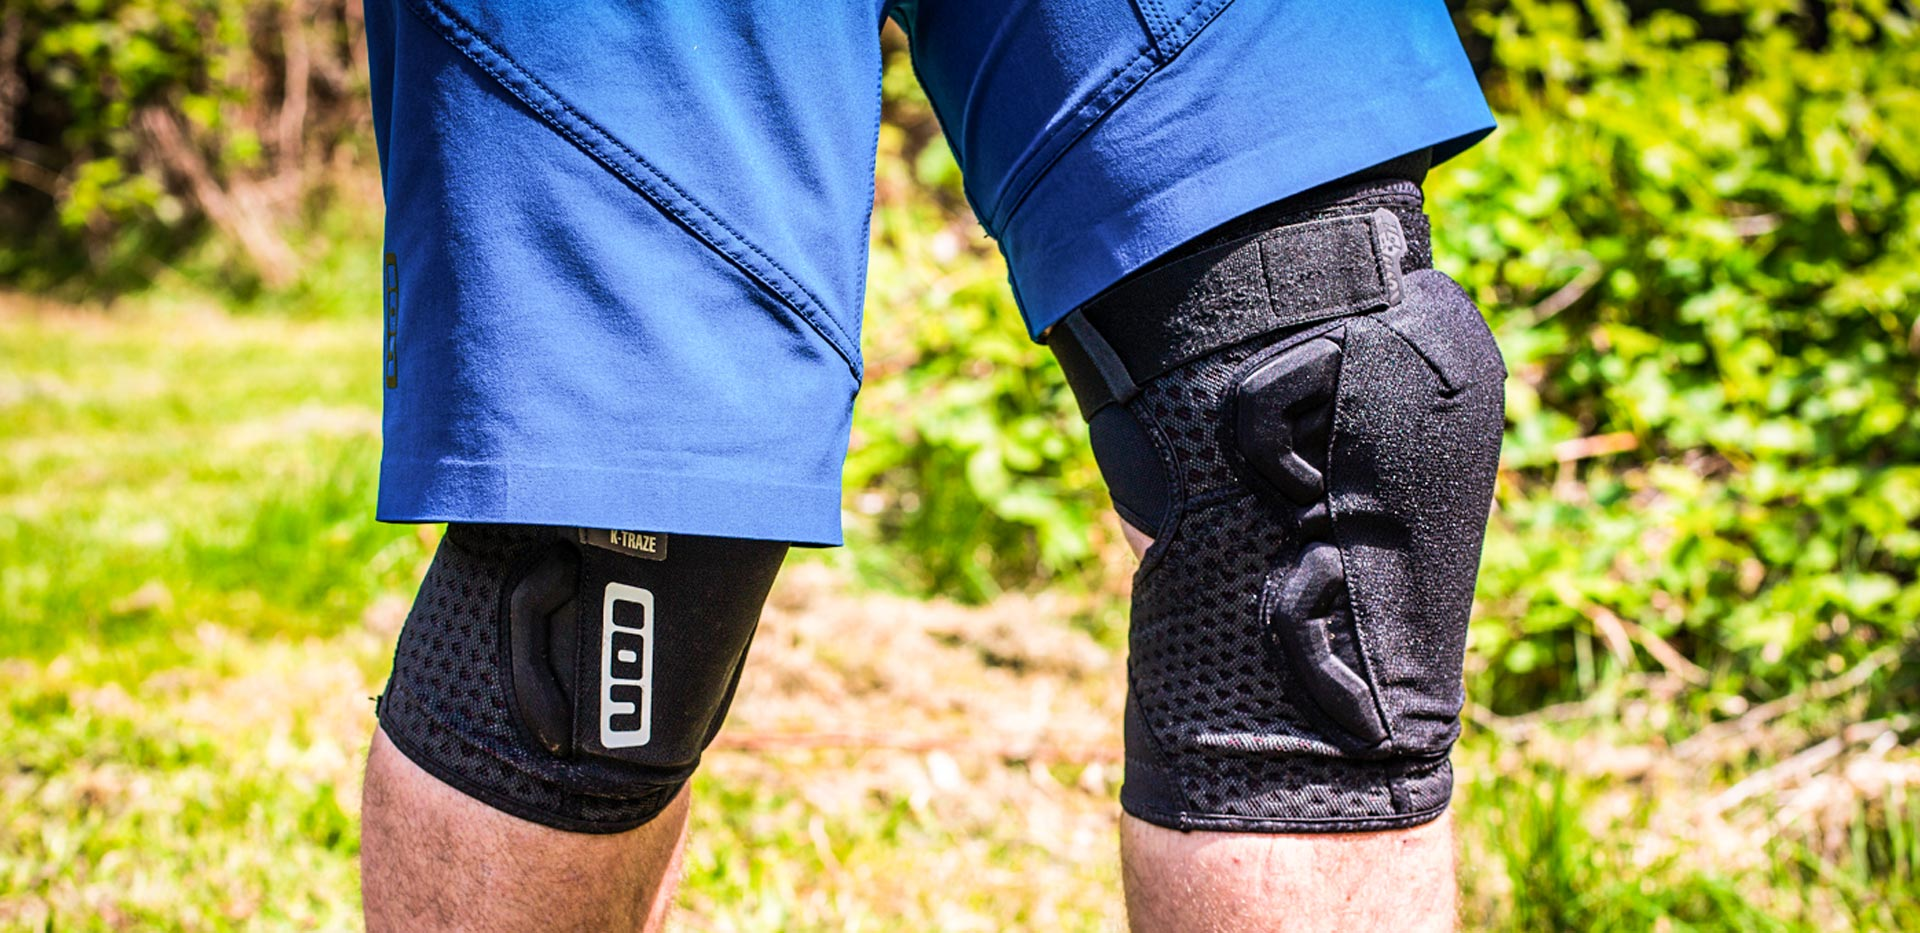 Ion Protection LS and Short Scrub AMP, K-Traze and E-Traze Review